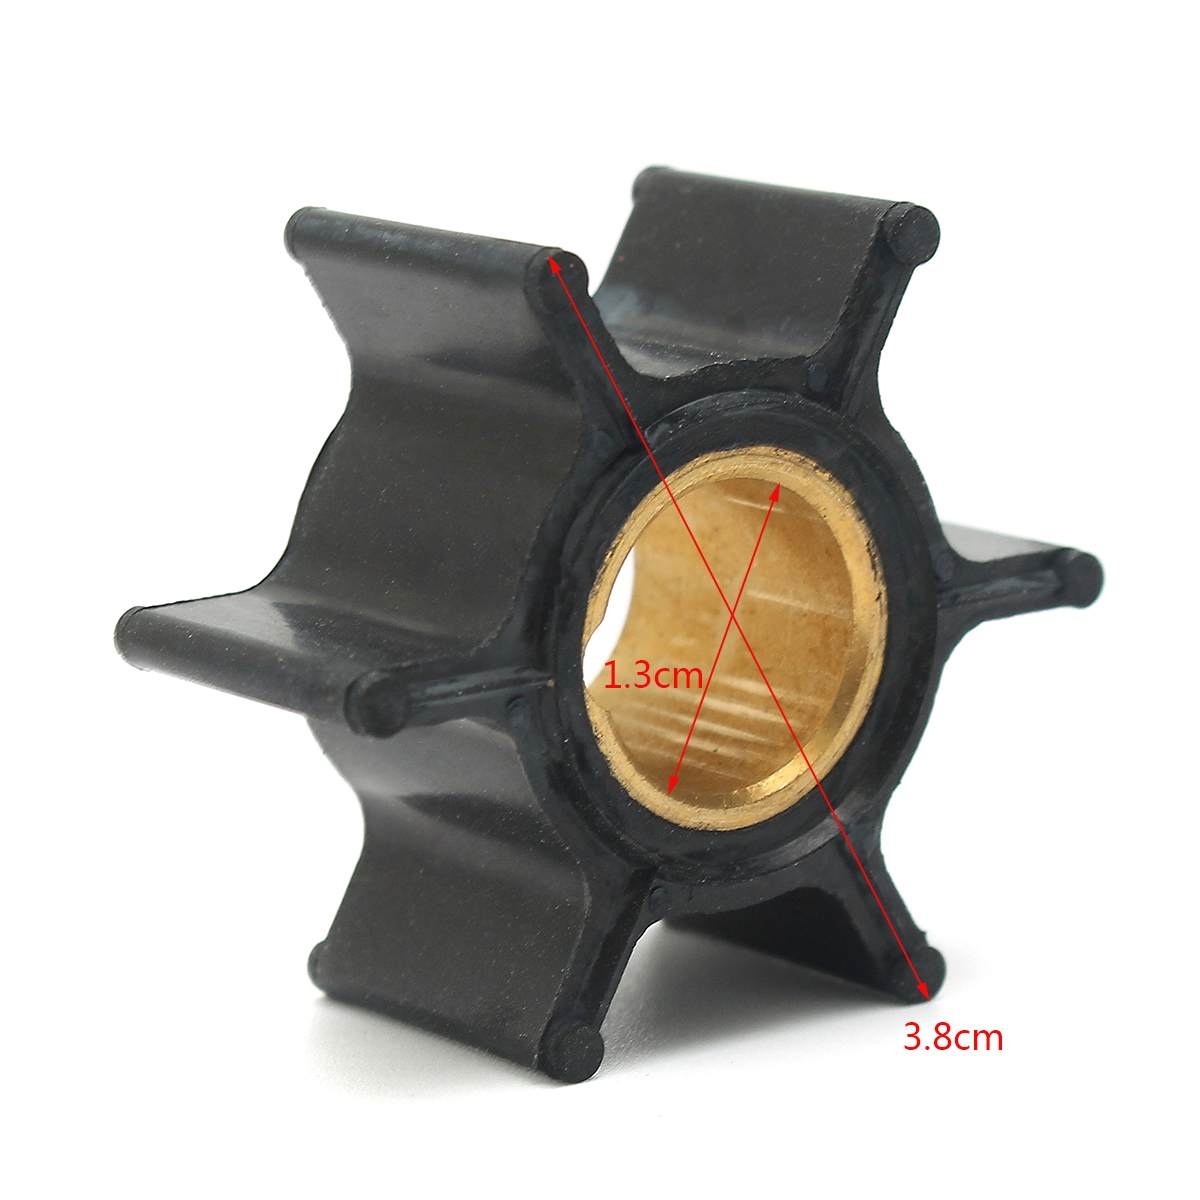 386084 18-3050 500355 Boat Outboard Motors Water Pump Impeller For Johnson Evinrude 9.9/15HP 6 Blades Replacement Rubber Black